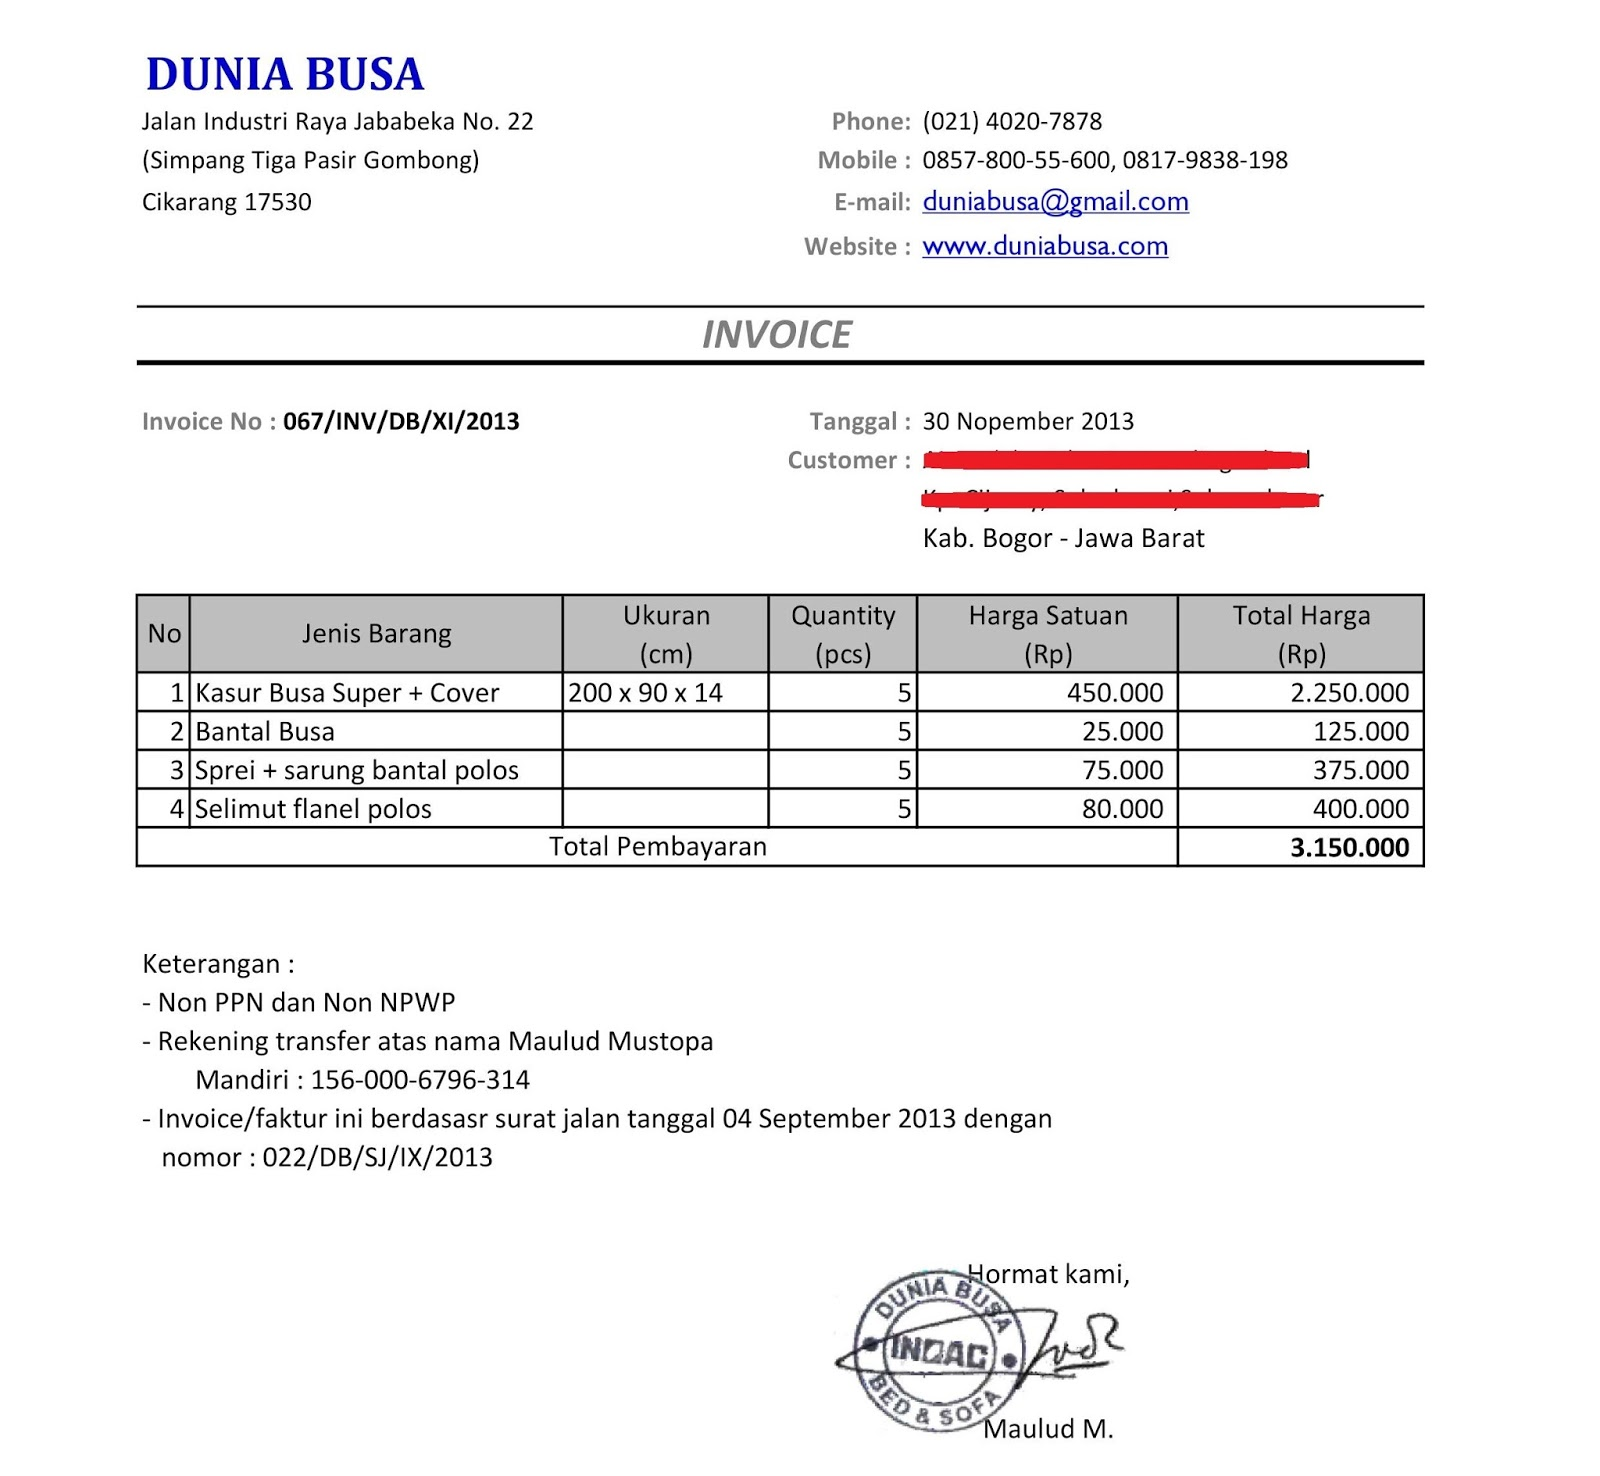 Centralasianshepherdus  Unique Free Invoice Online  Create Invoice Online  Invoice Template  With Foxy Contoh Format Invoice Atau Surat Tagihan  Brankas Arsip  Free Invoice Online With Alluring Ebay Motors Invoice Also Invoices Meaning In Addition Performer Invoice And Send An Invoice Through Ebay As Well As What Must An Invoice Contain Additionally Vat Invoice Rules From Sklepco With Centralasianshepherdus  Foxy Free Invoice Online  Create Invoice Online  Invoice Template  With Alluring Contoh Format Invoice Atau Surat Tagihan  Brankas Arsip  Free Invoice Online And Unique Ebay Motors Invoice Also Invoices Meaning In Addition Performer Invoice From Sklepco